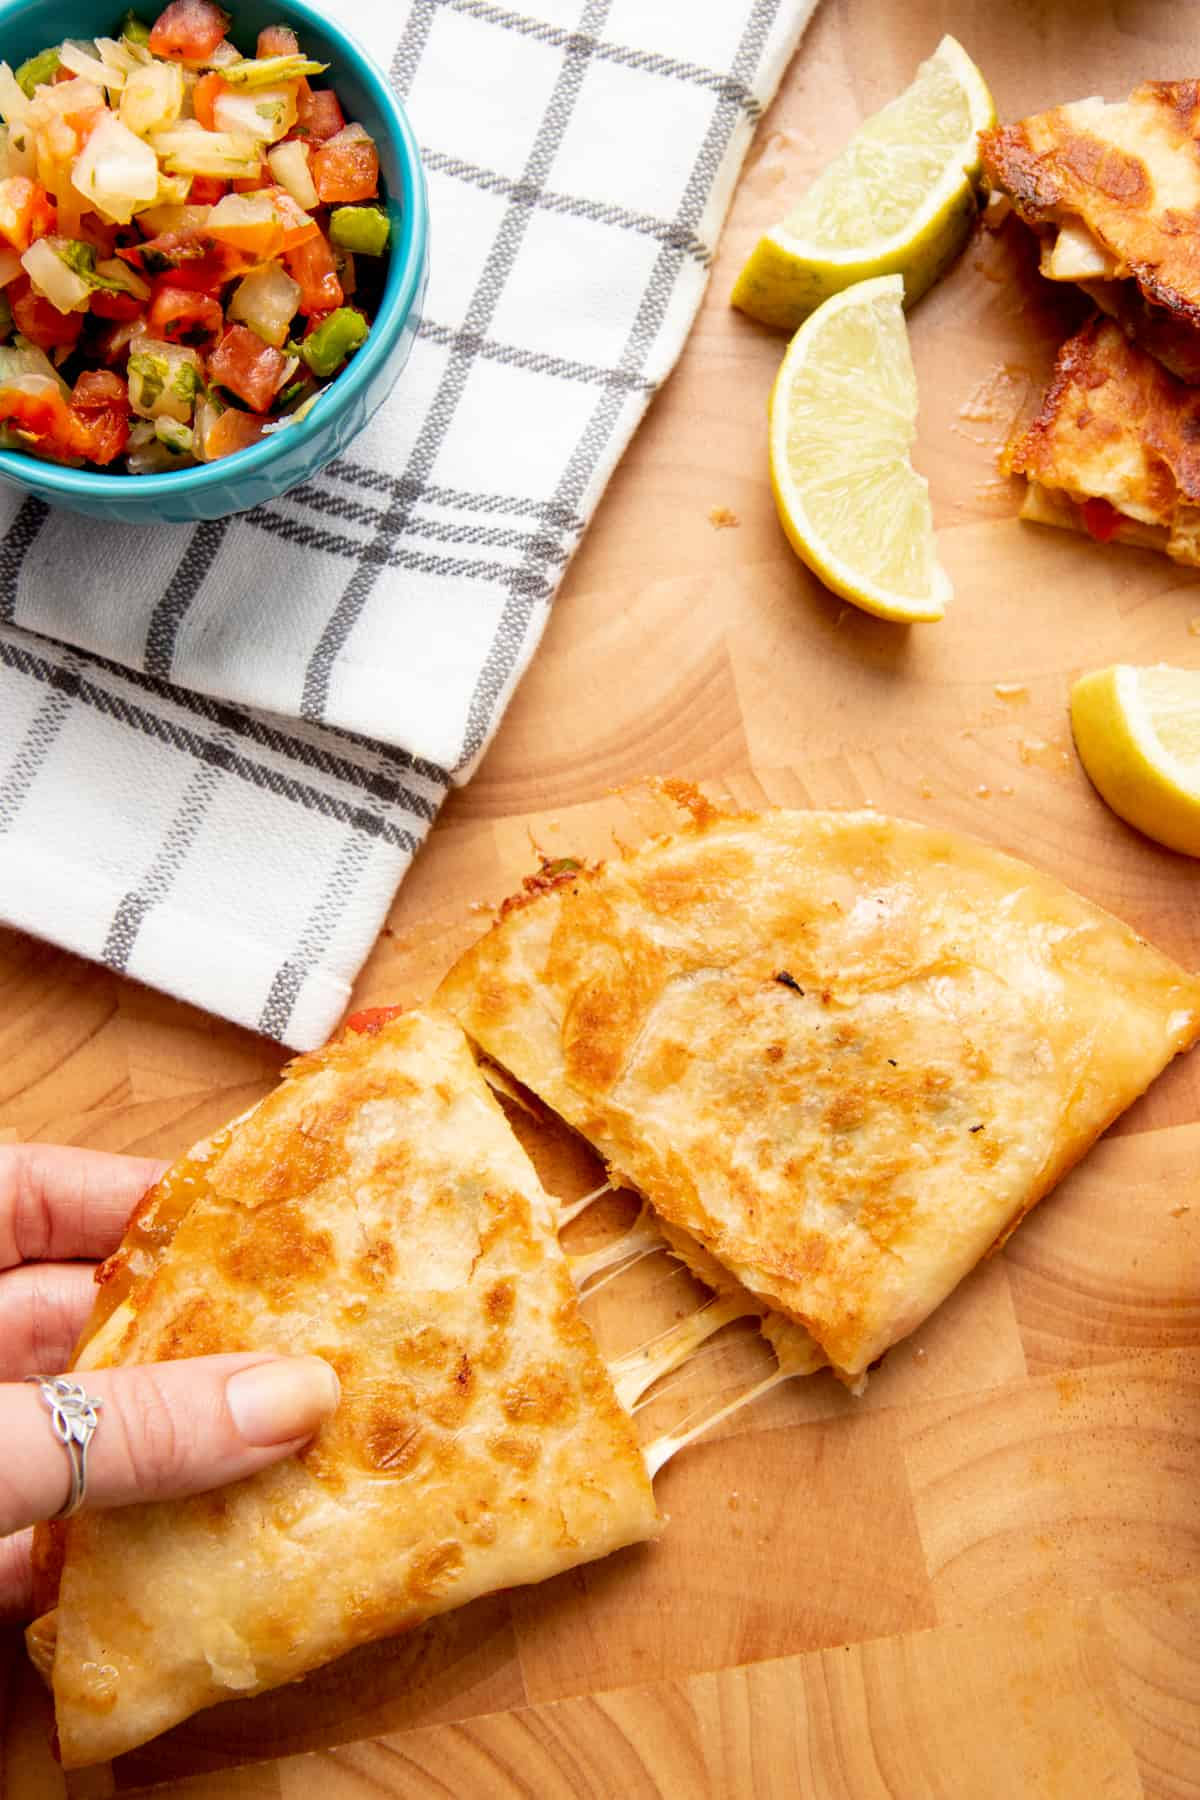 A hand pulls apart two halves of a quesadilla. A teal bowl of salsa sits on a white and brown plaid dishtowel.